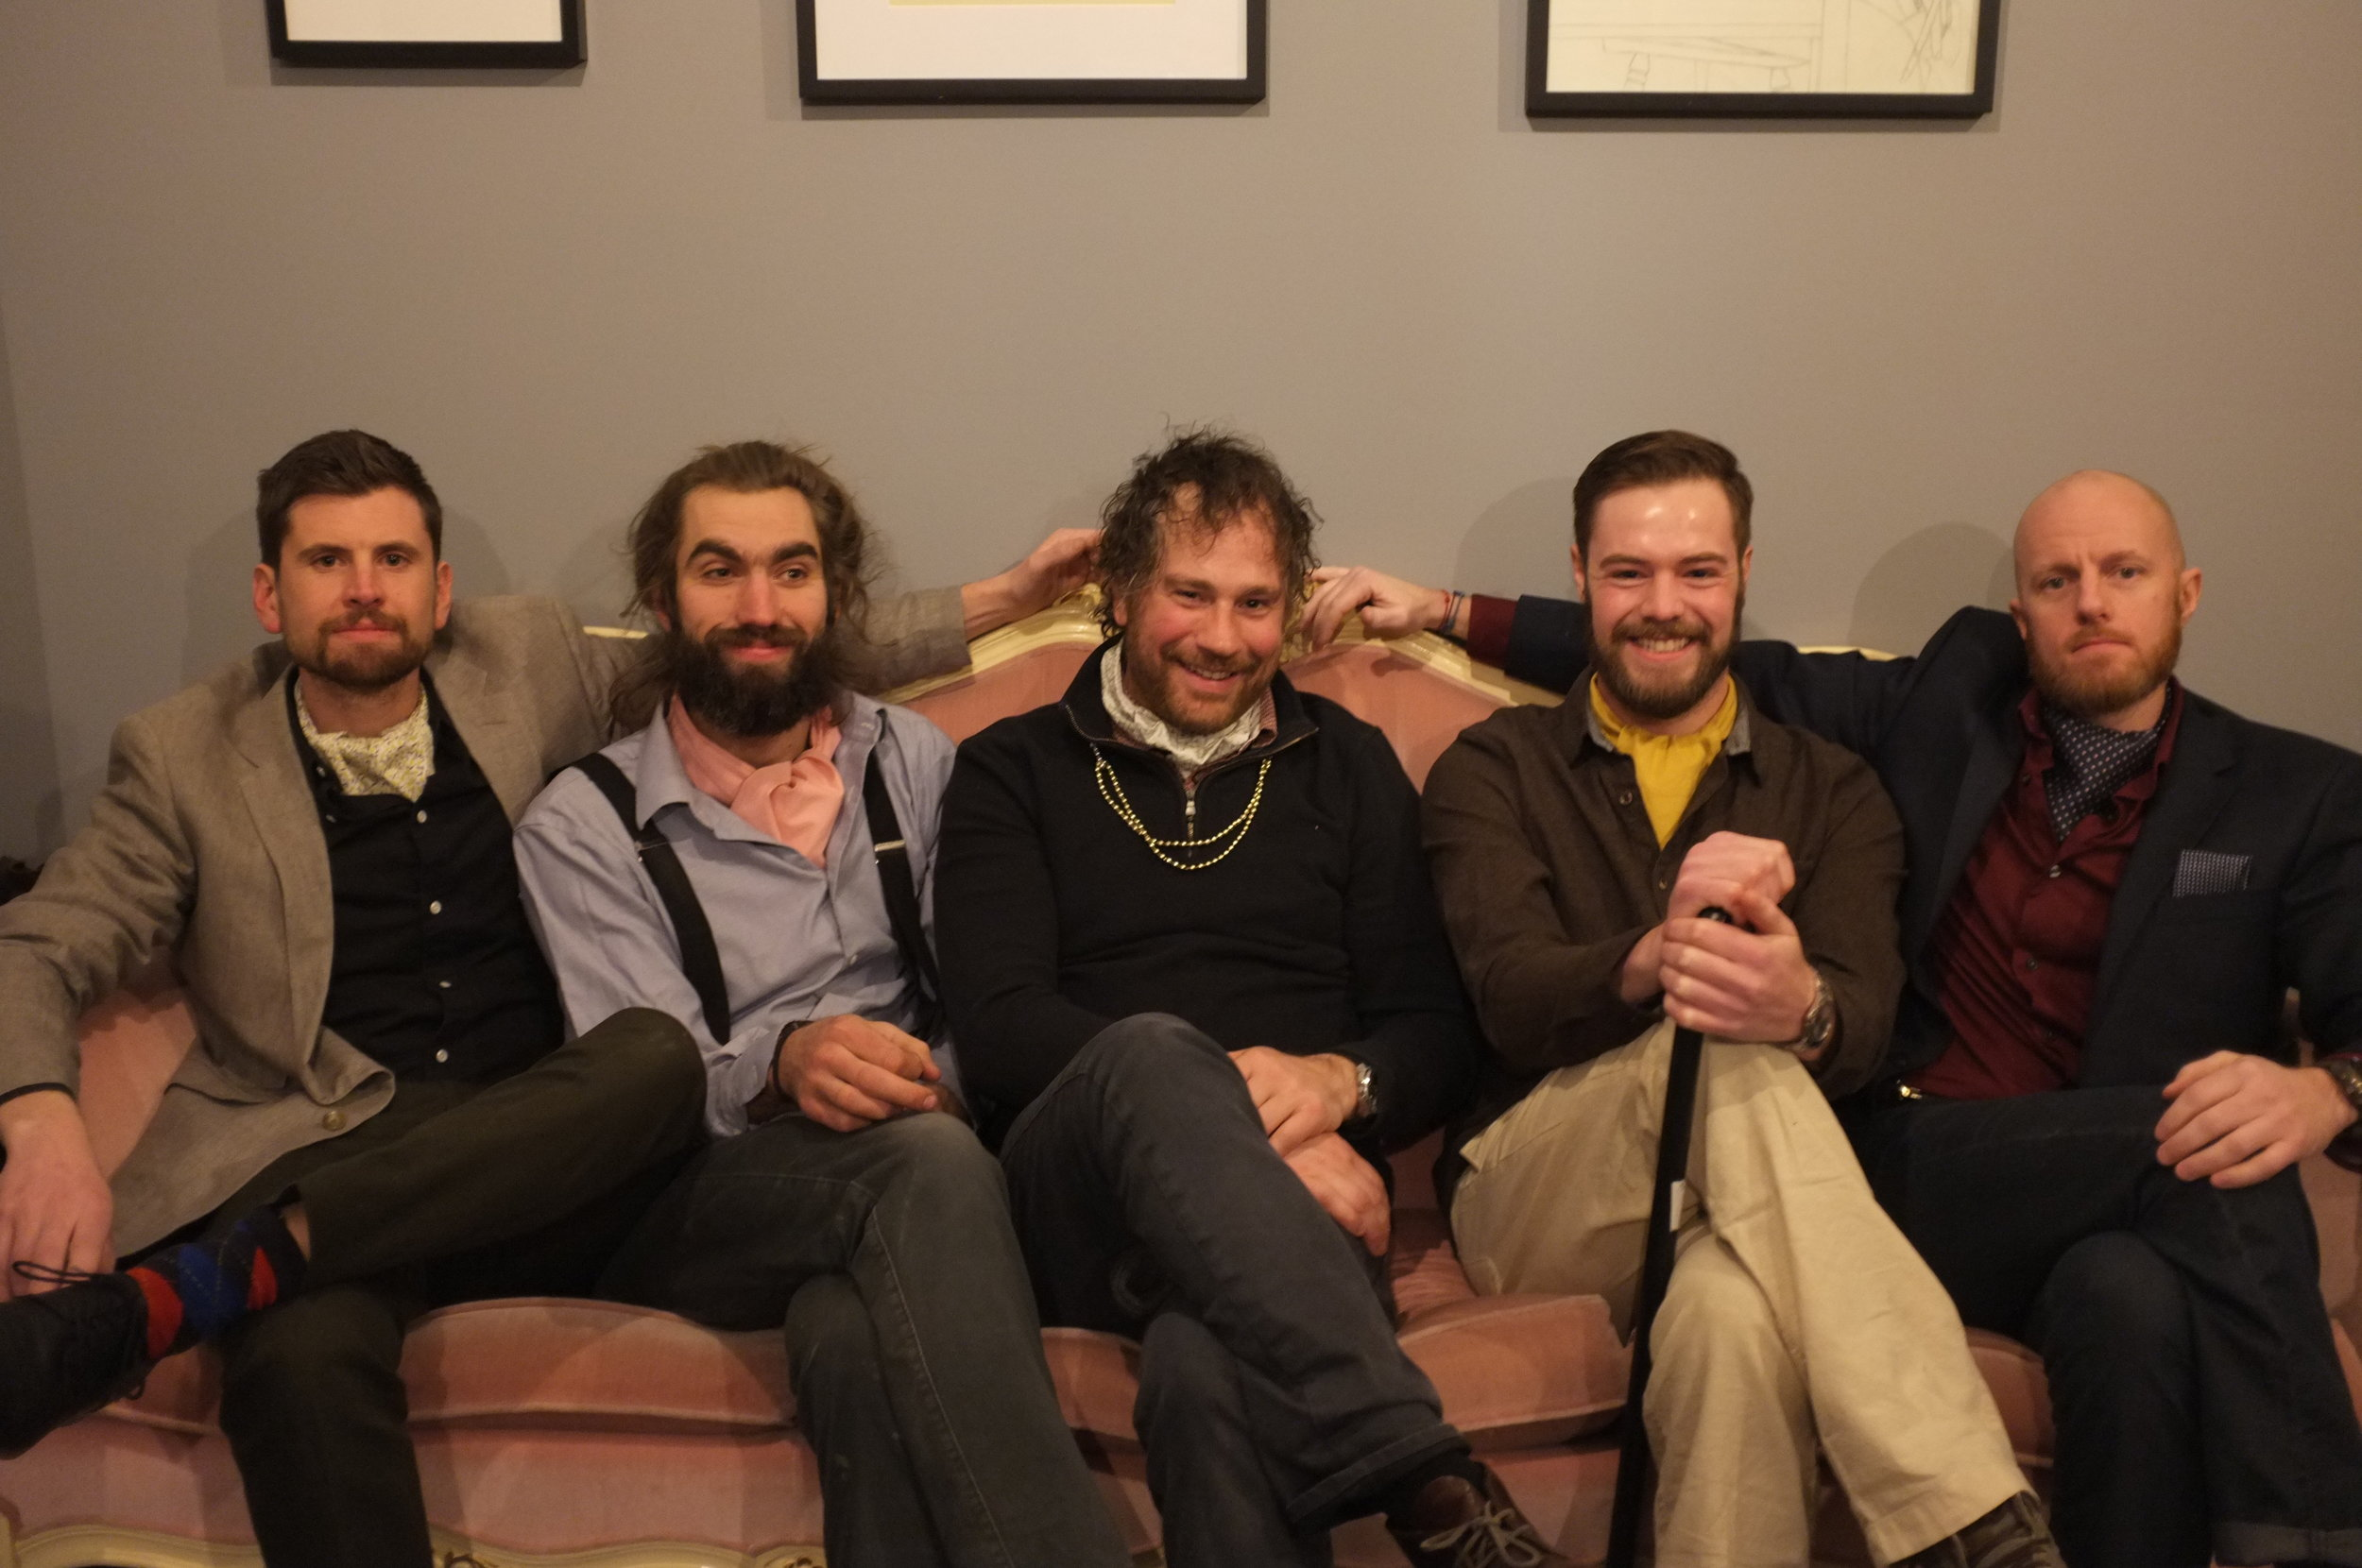 Beards and Ascots